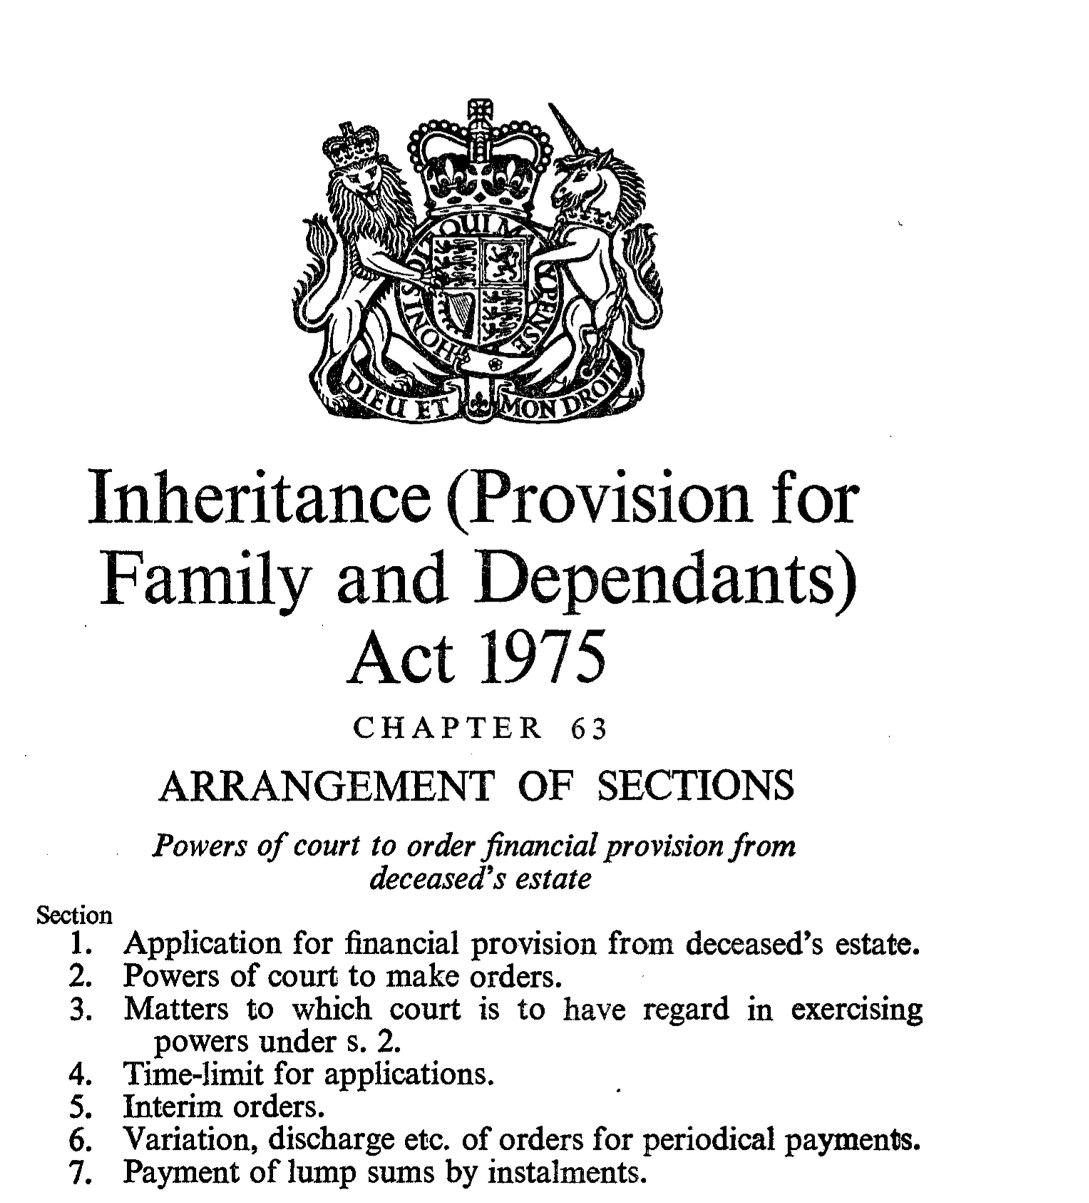 family law act 1975 essays We would like to show you a description here but the site won't allow us.